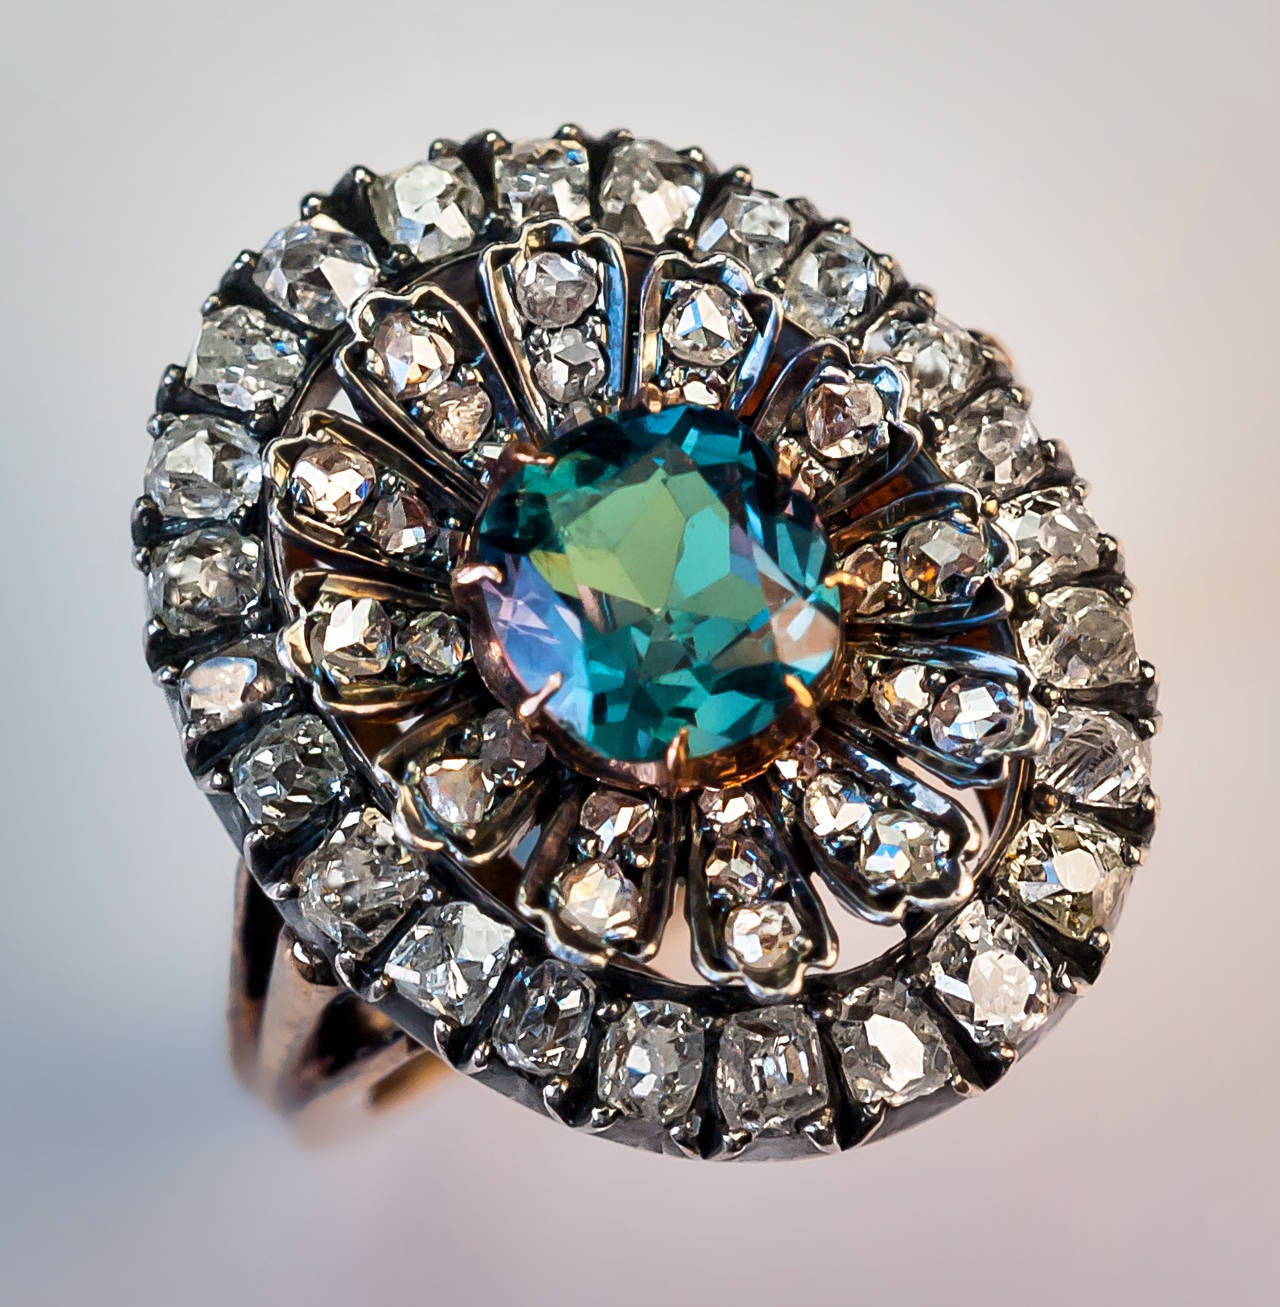 Rare Antique Russian Alexandrite Diamond Cluster Ring At